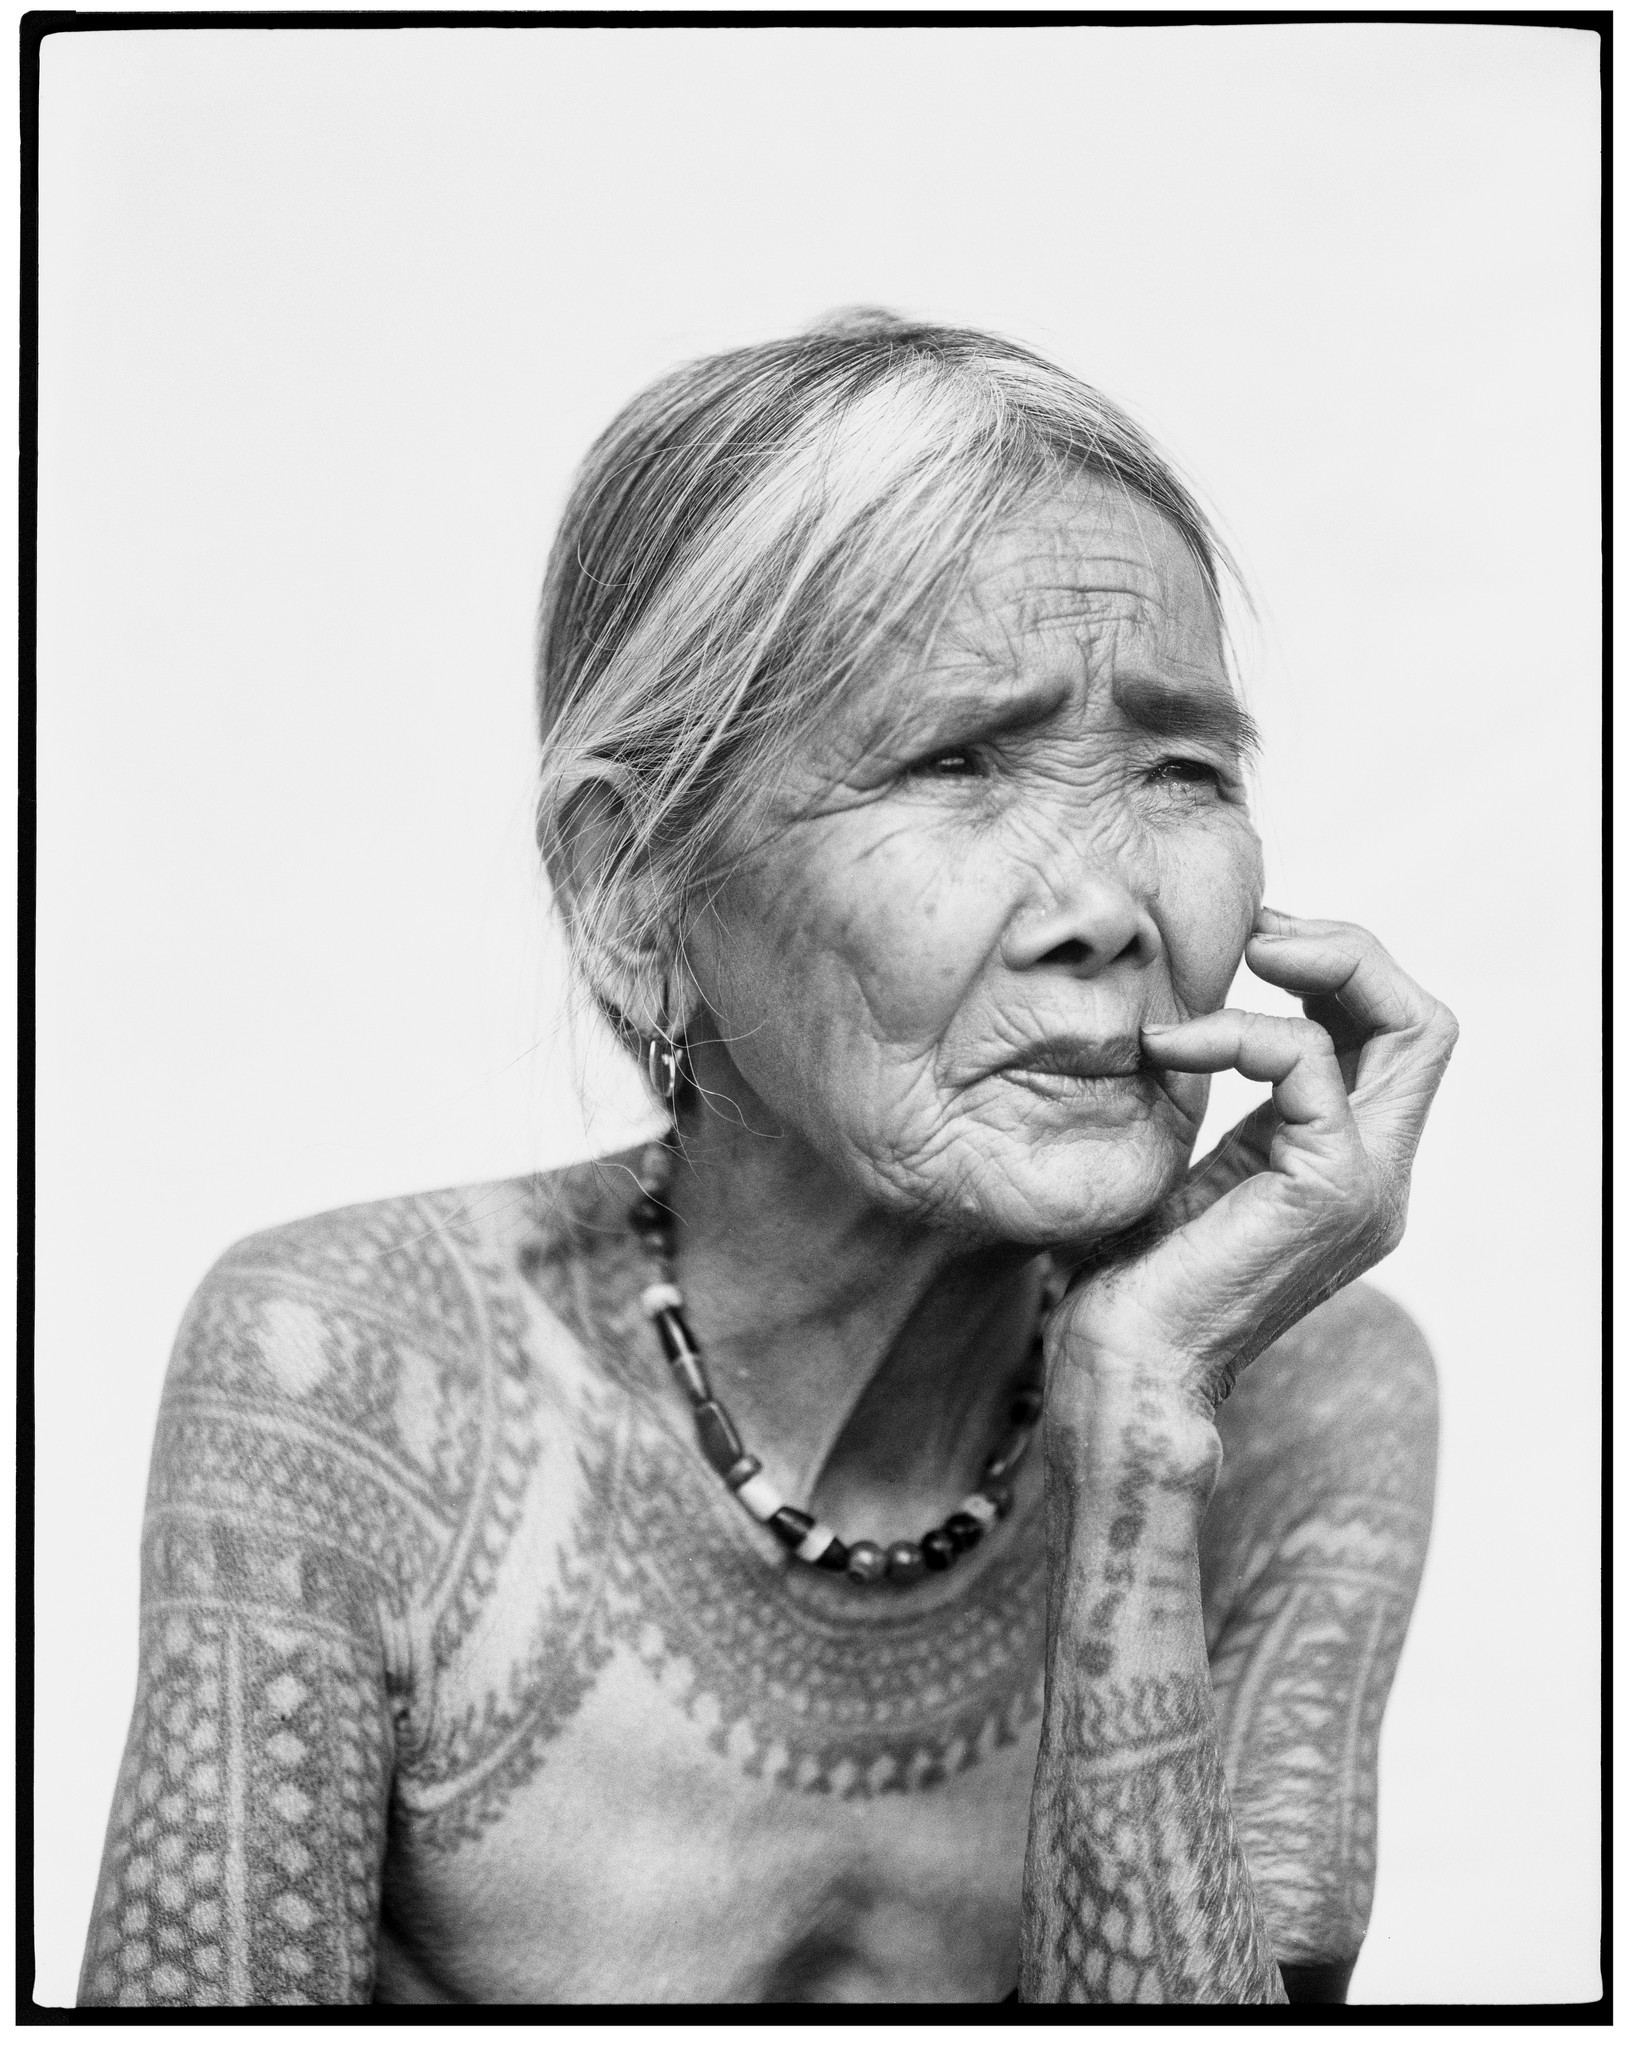 An image of almost 100 year-old Apo Whang-od Oggay, one of the last mambabatok (master tattooers) a